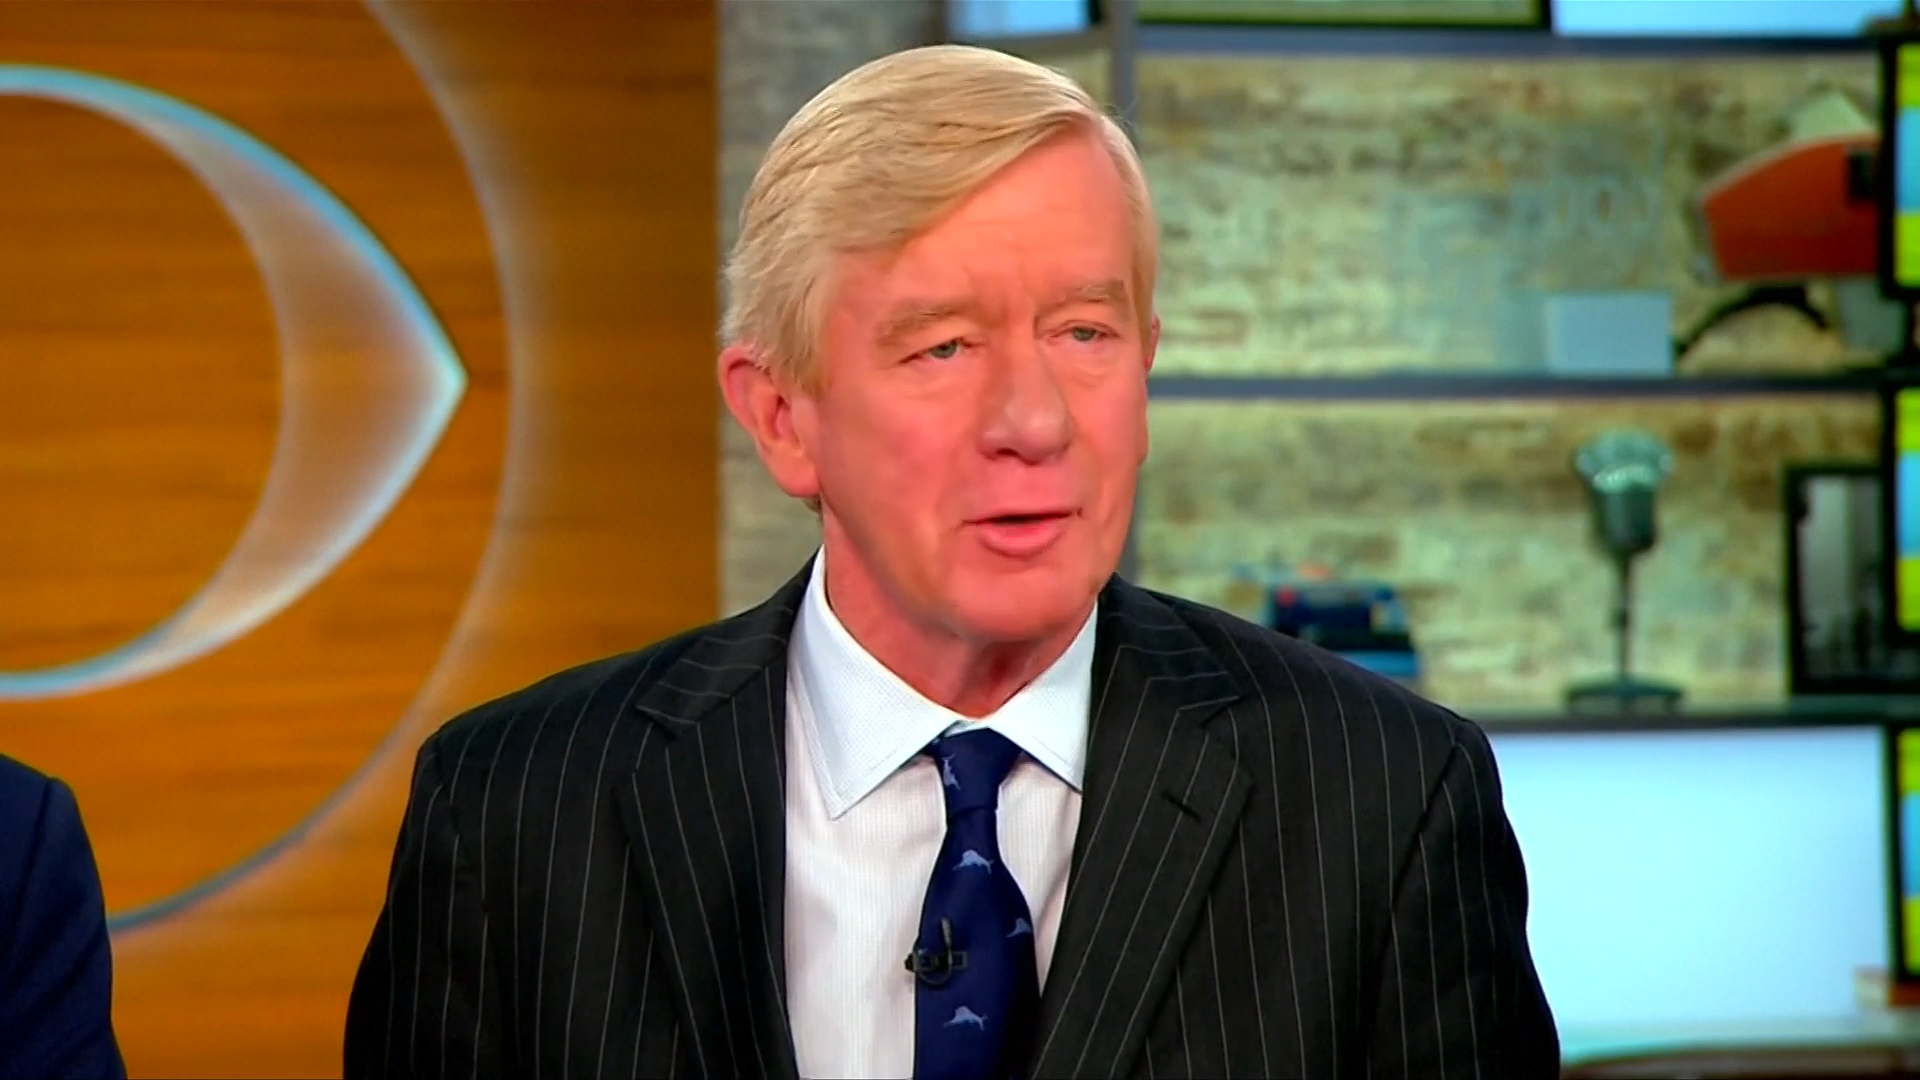 Former Massachusetts Governor Bill Weld Will Likely Challenge Trump in 2020